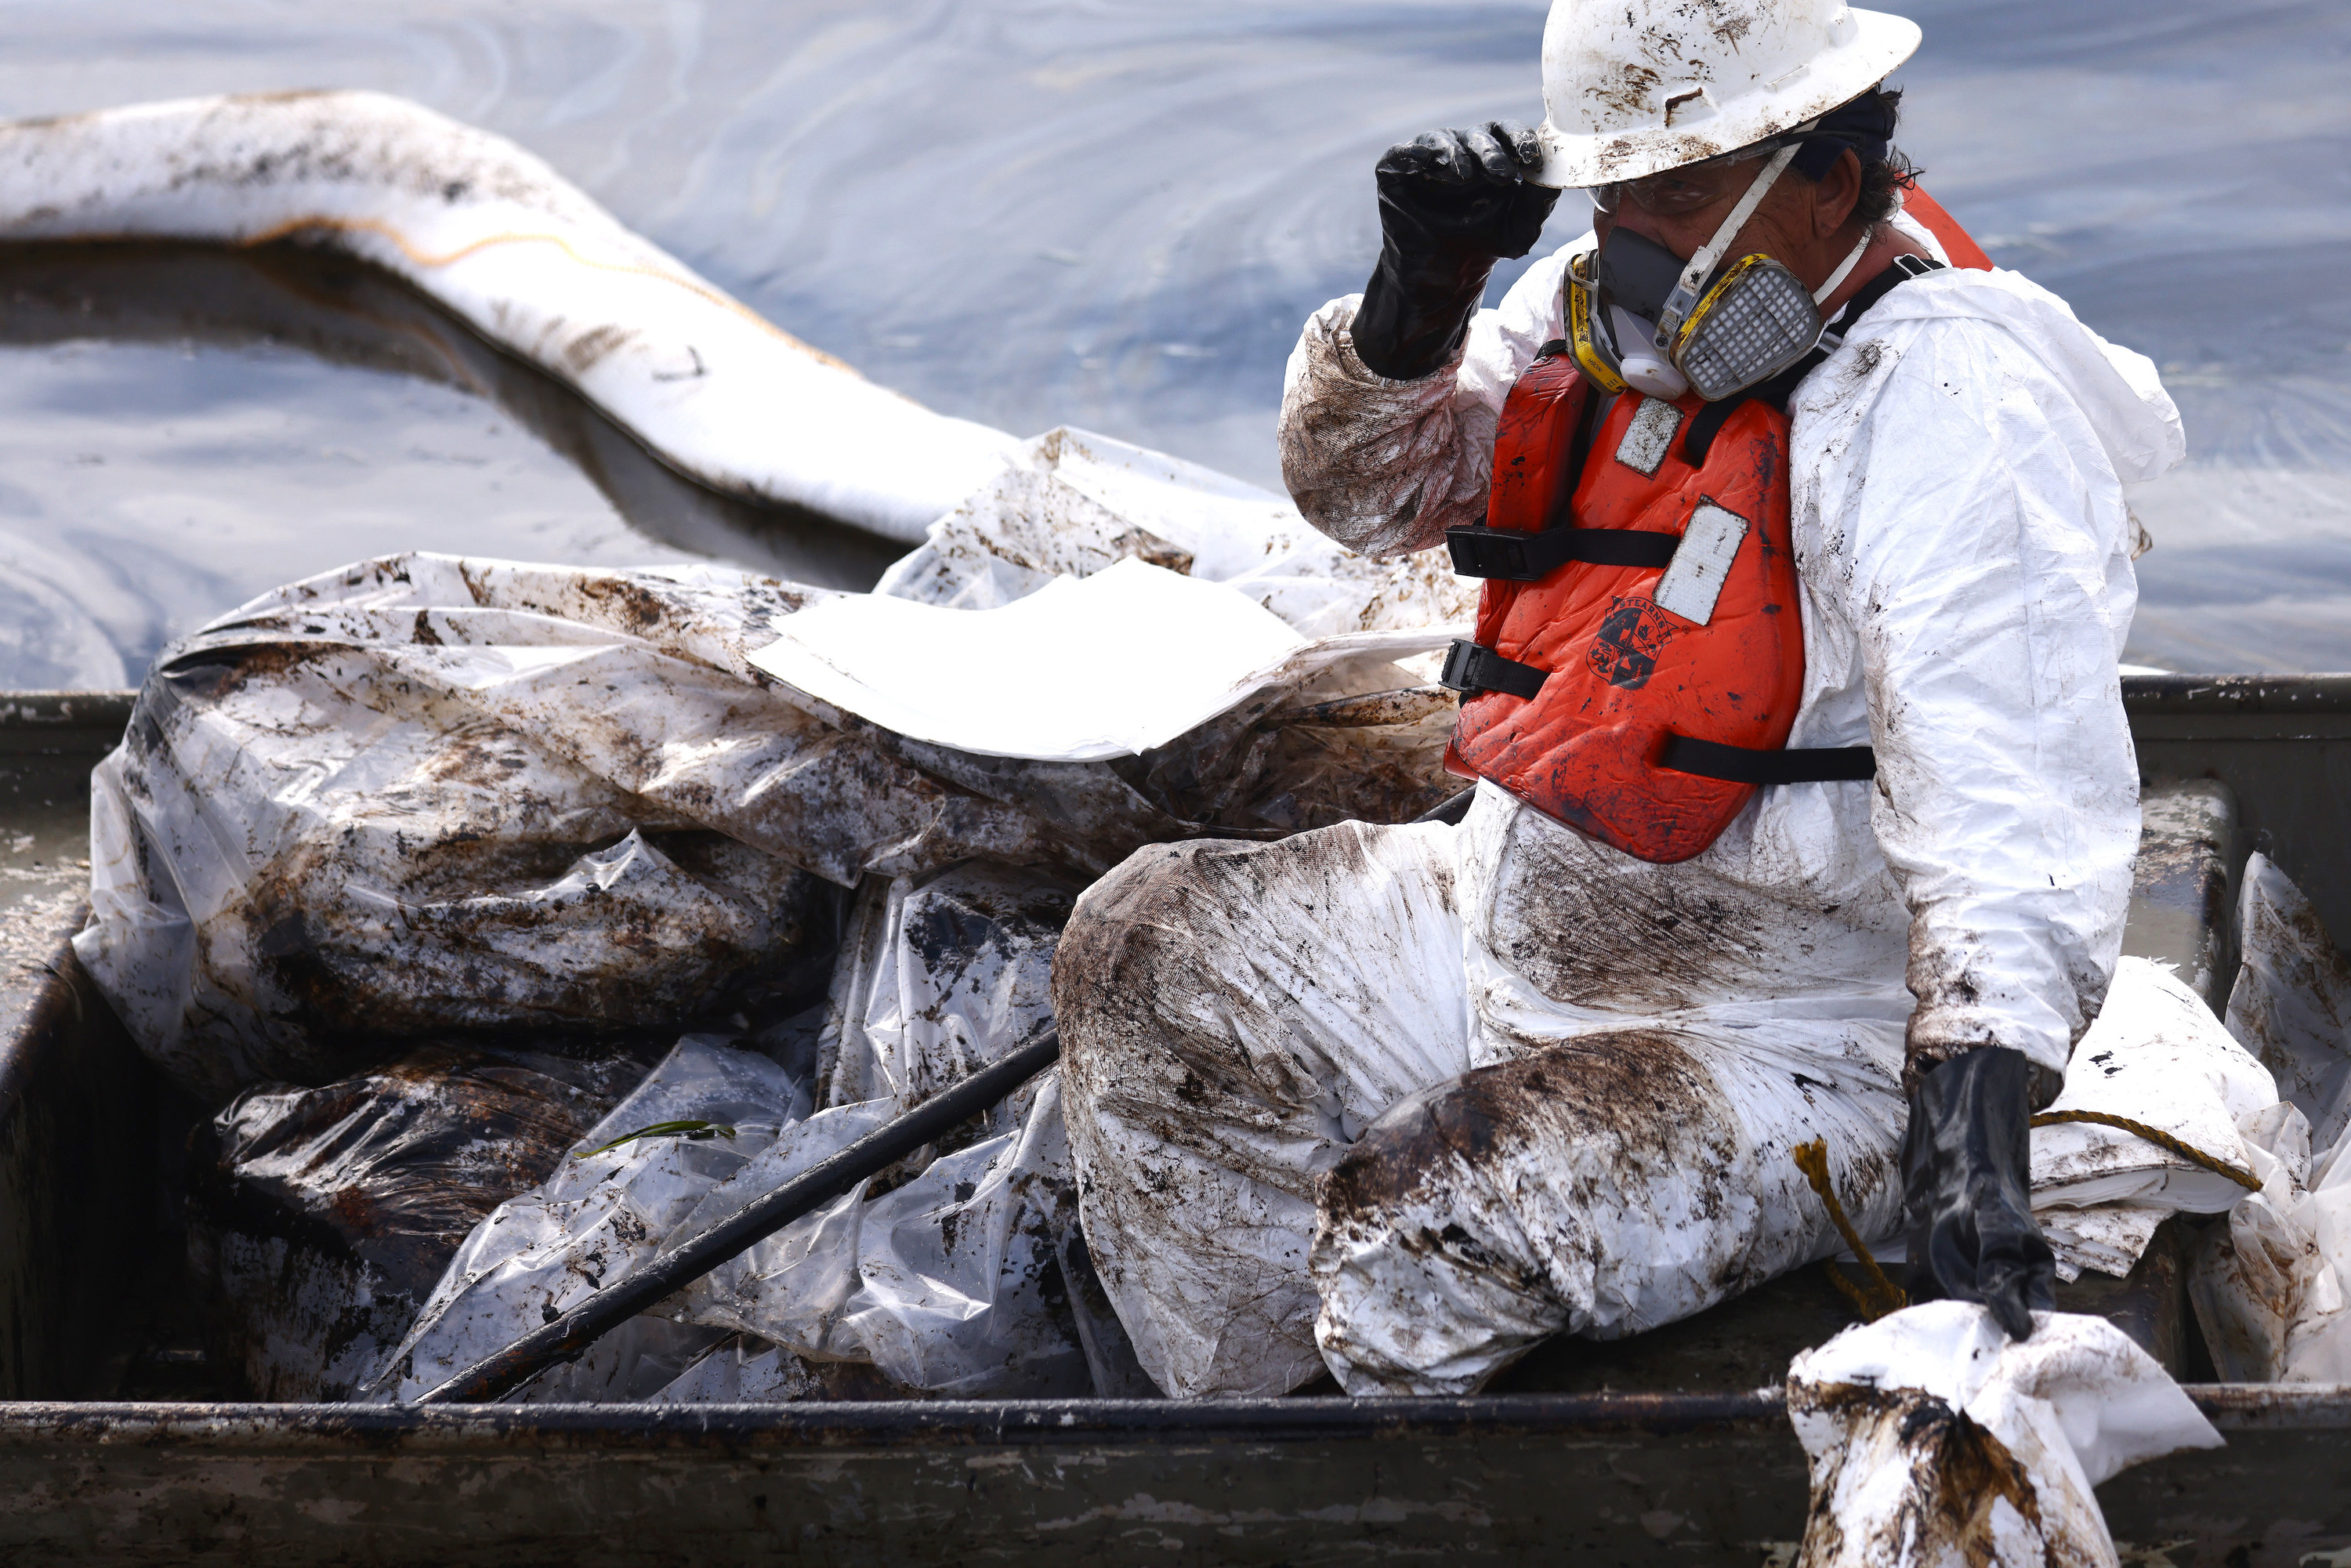 A cleanup worker wears a life vest and coveralls covered with dark residue from the oil spill